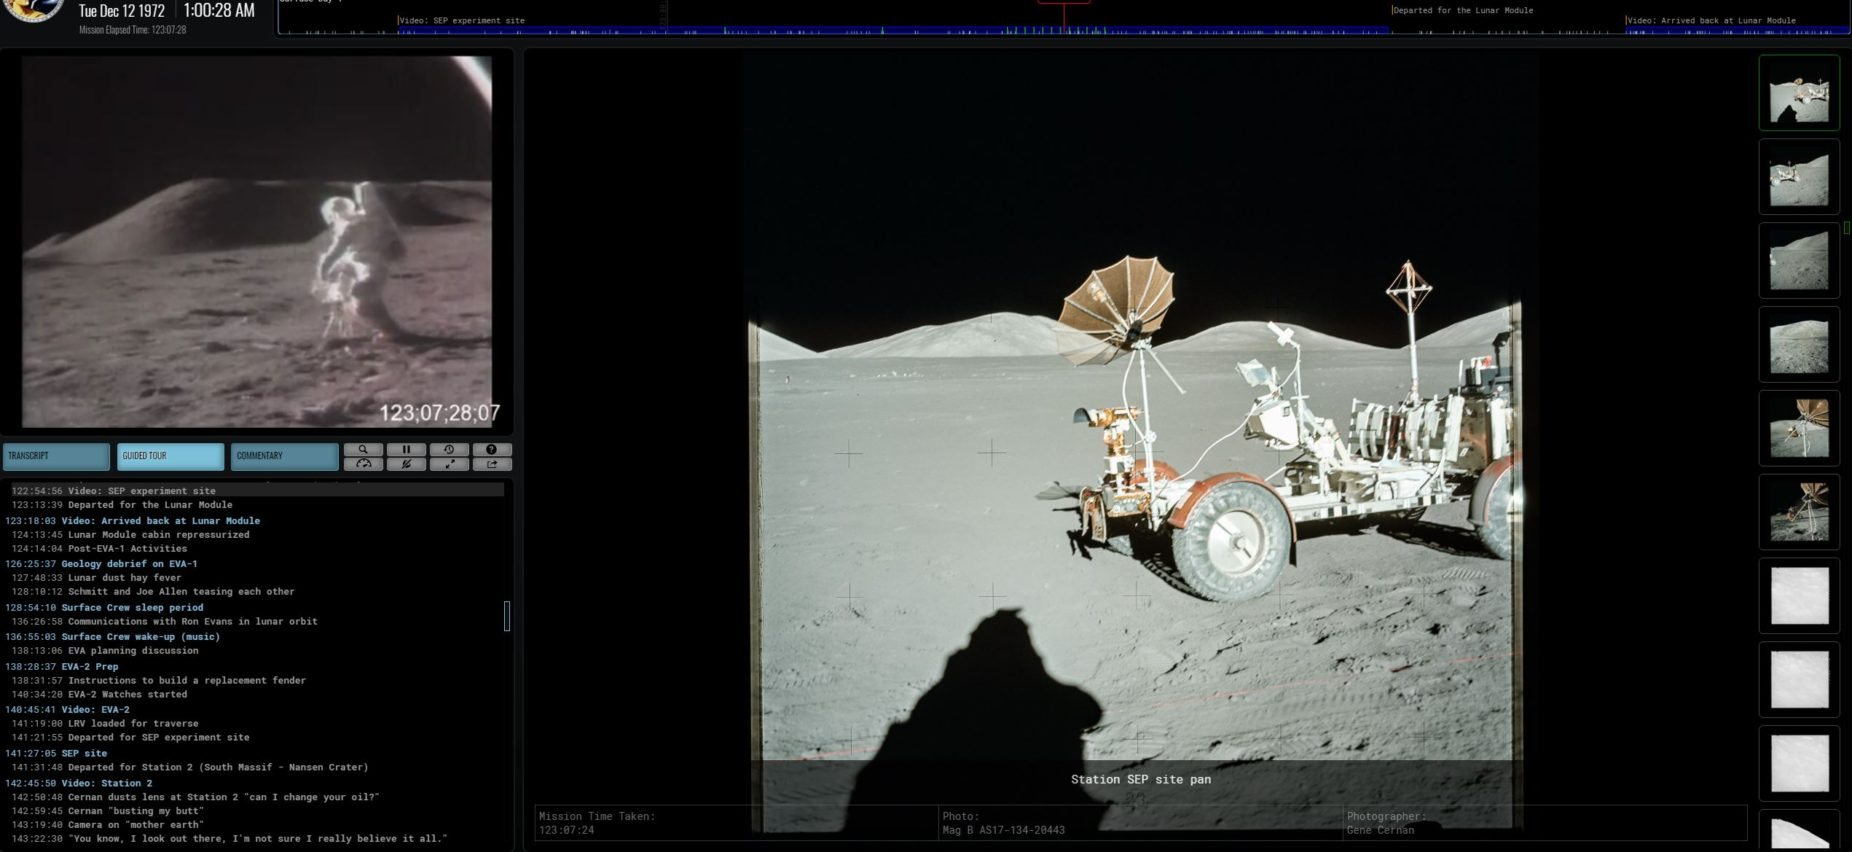 Image: Screen shot from the Apollo17.org webpage